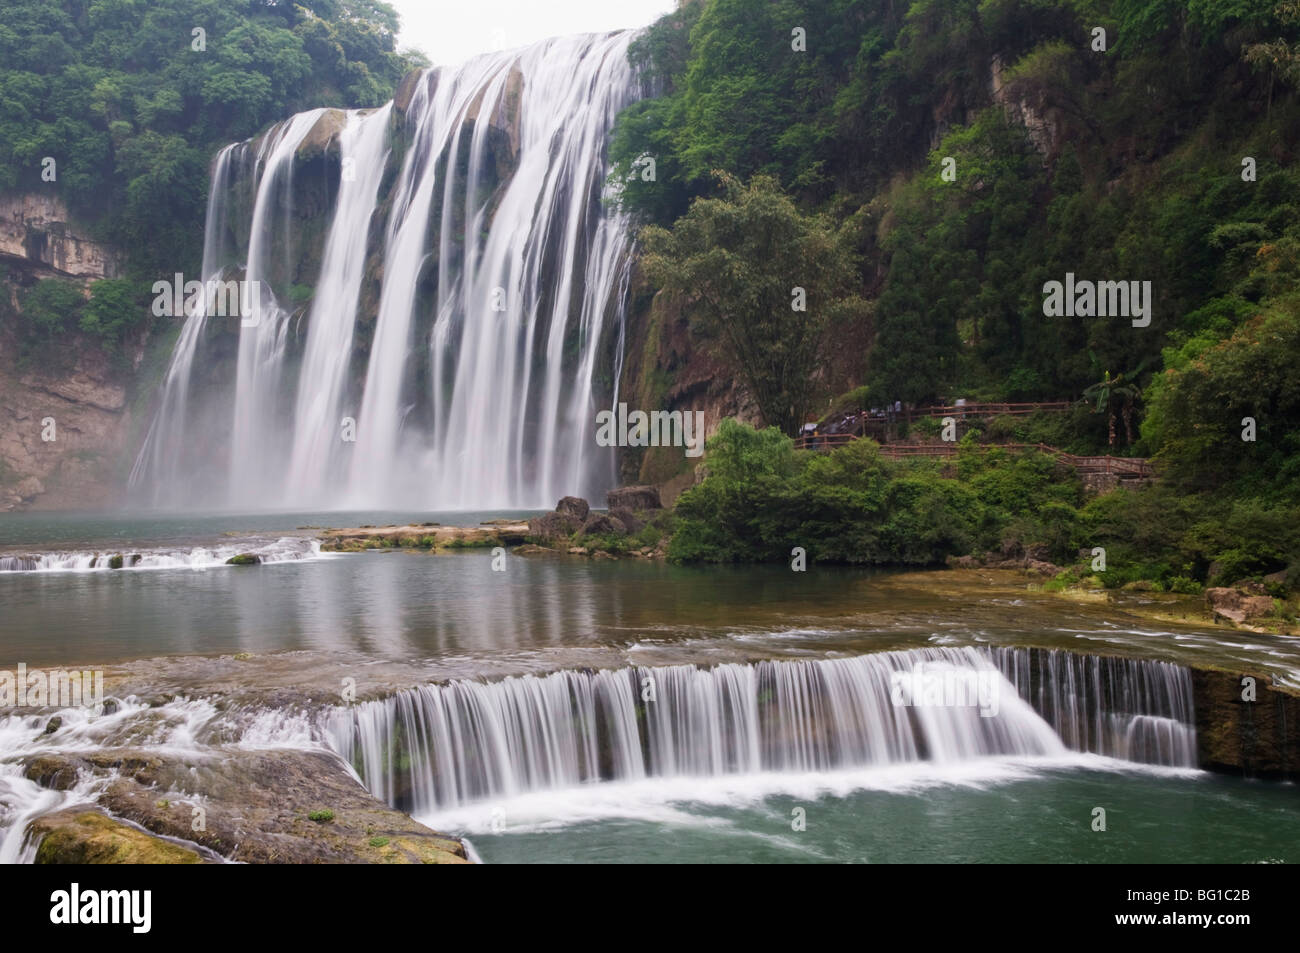 Huangguoshu Waterfall largest in China 81m wide and 74m high, Guizhou Province, China, Asia - Stock Image